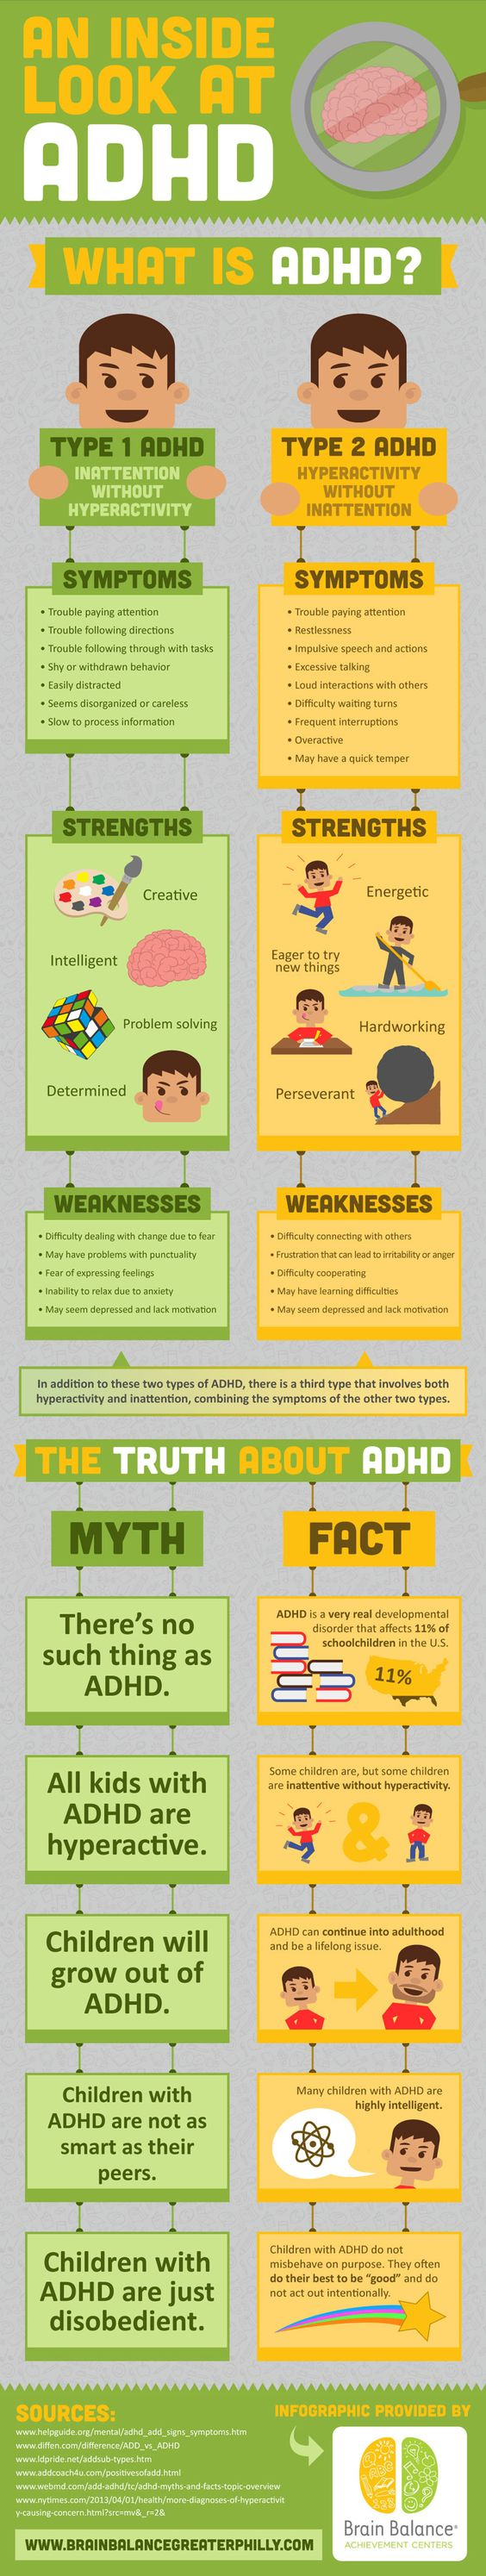 I am almost 100% I am type 1.  Here is some information in detail and short for people who DONT UNDERSTAND - I have 2 of my 4 children who have been diagnosed with ADHD by extended studies from dr with info from teachers to assist.  It's different between both of them. These symptoms are right on!